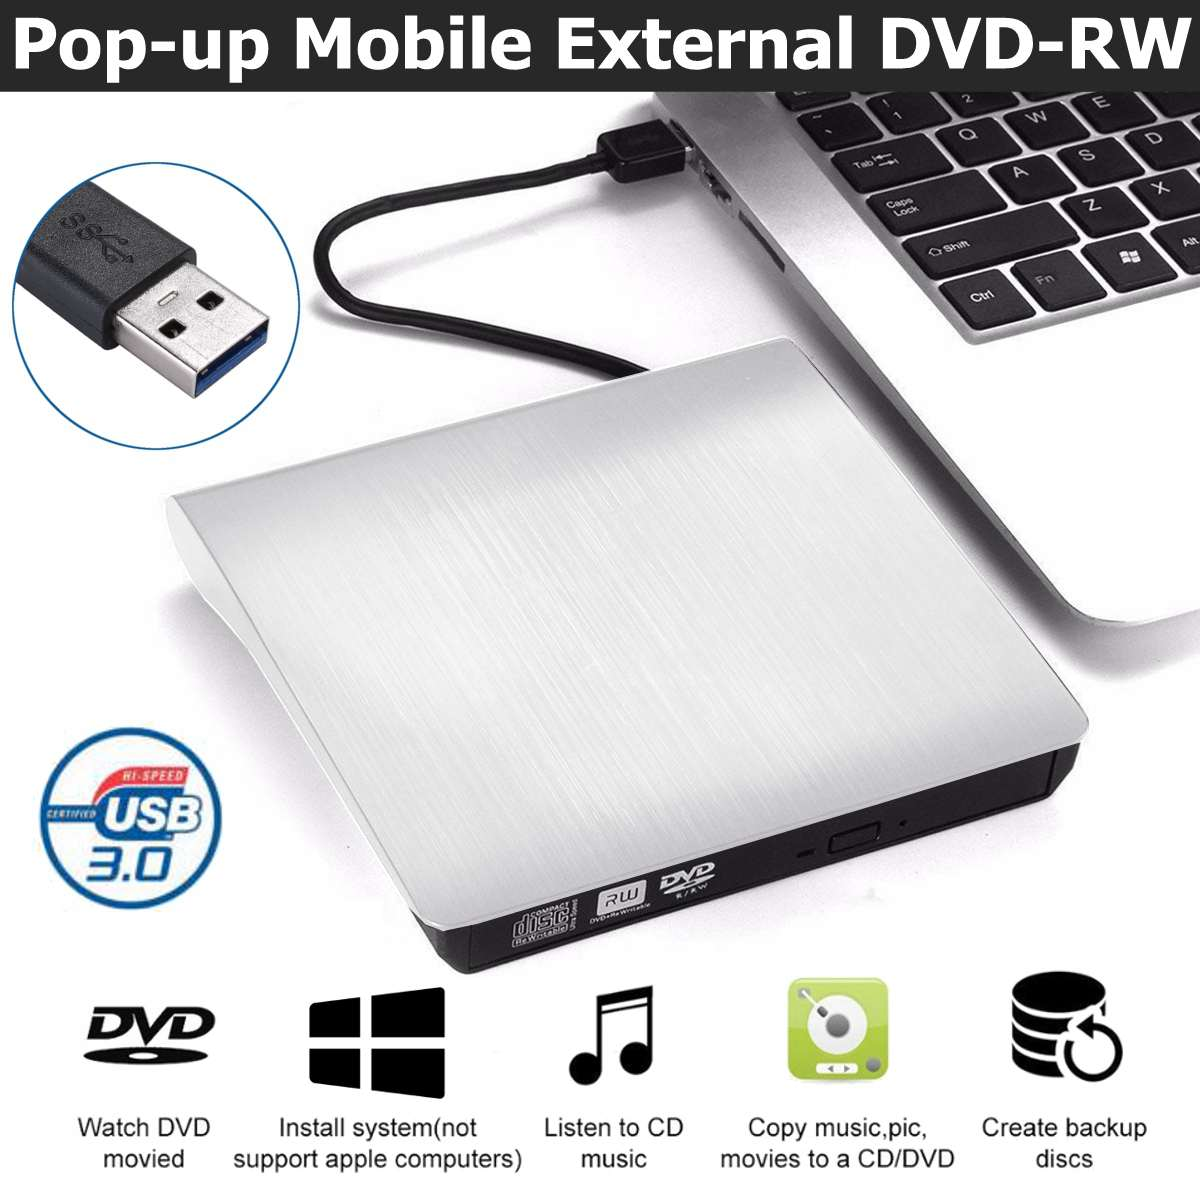 New Design White USB 3.0 Slim External DVD RW CD Writer Drive Burner Reader Player Optical Drives For Laptop PC|Optical Drives| |  - title=